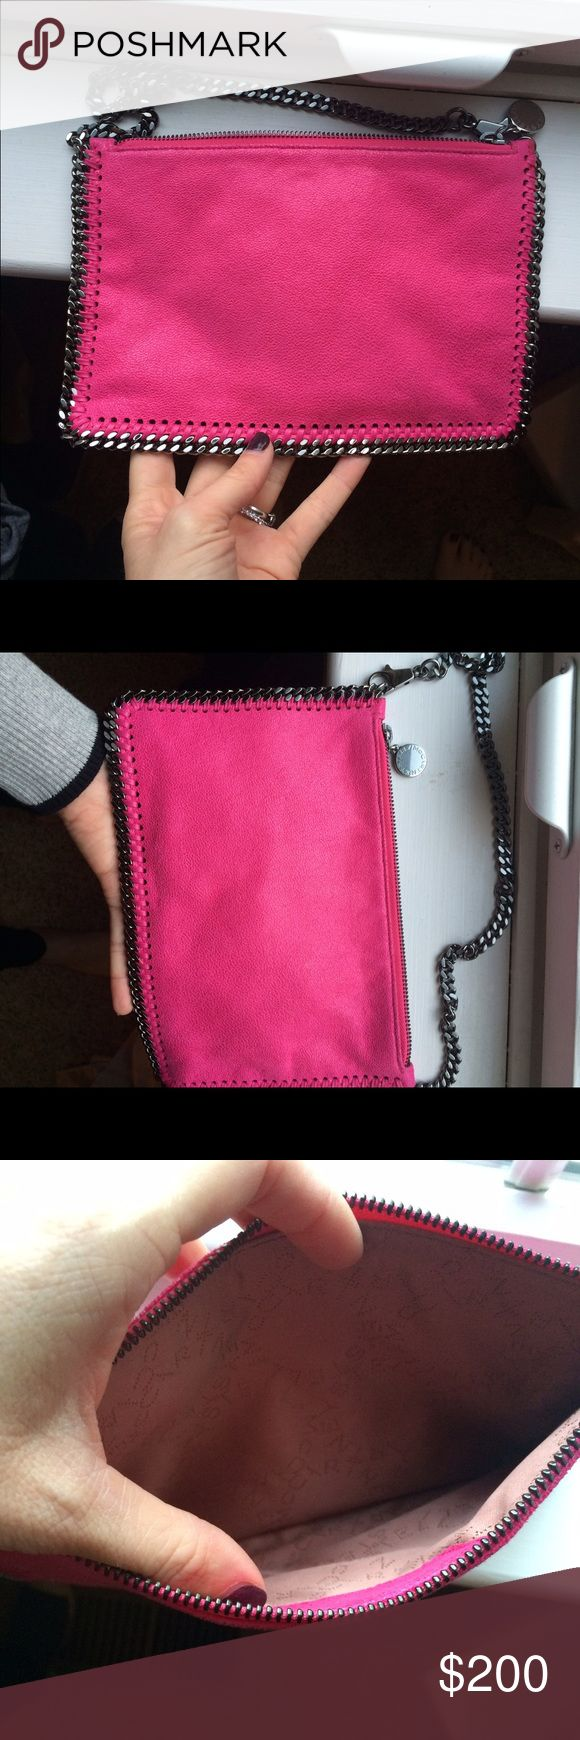 Stella McCartney purse Amazing hot pink stella McCartney purse. This can be used as a clutch or under the arm bag. In great condition with box it came in. From Saks about a year ago. Feel free to put a offer in! Stella McCartney Bags Shoulder Bags